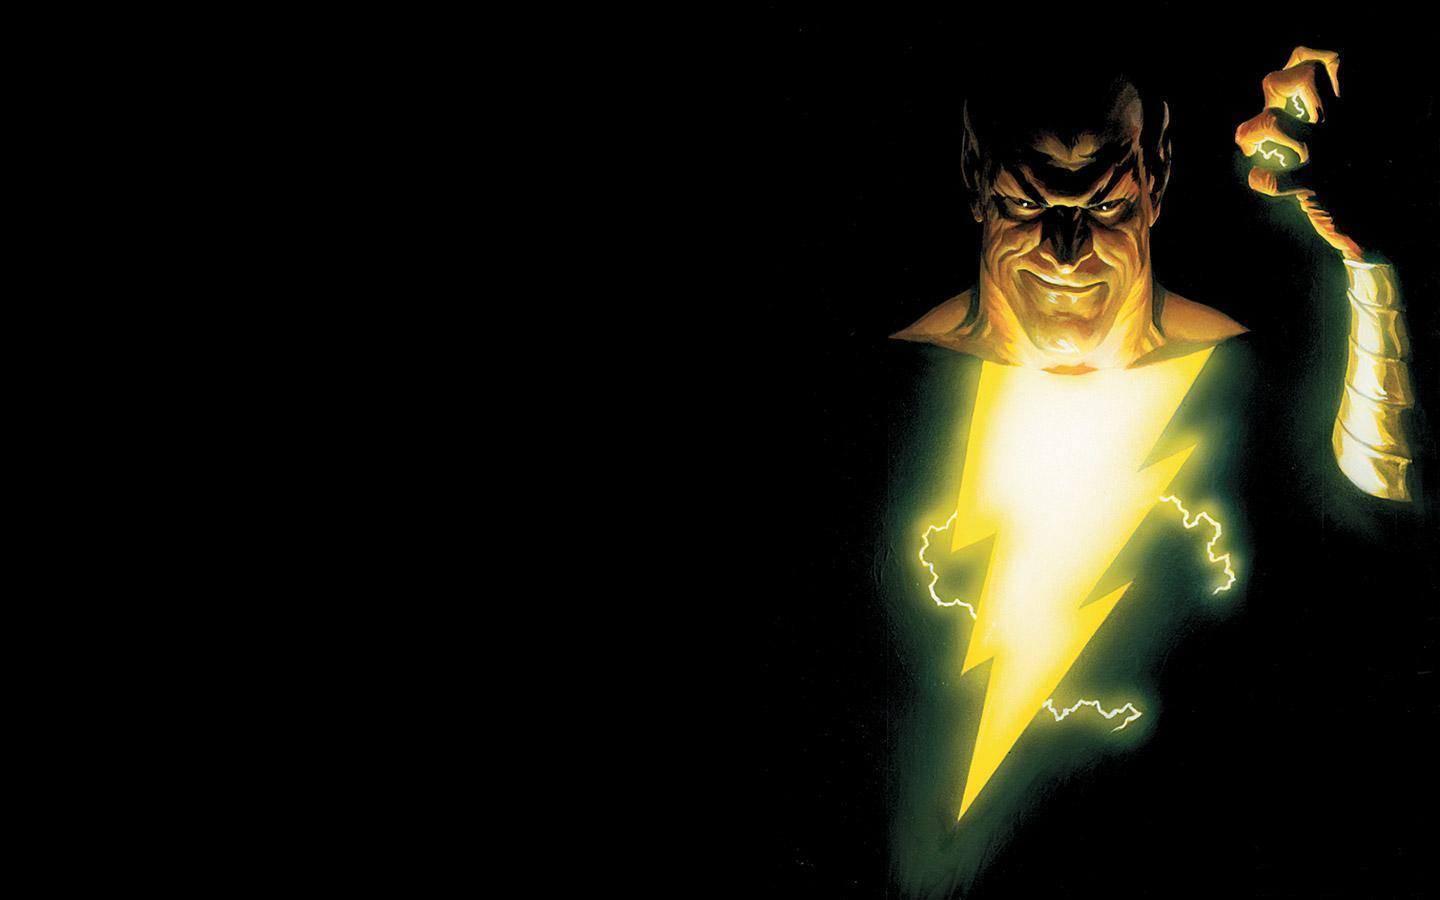 Black Adam Wallpaper and Background Image | 1440x900 | ID ...